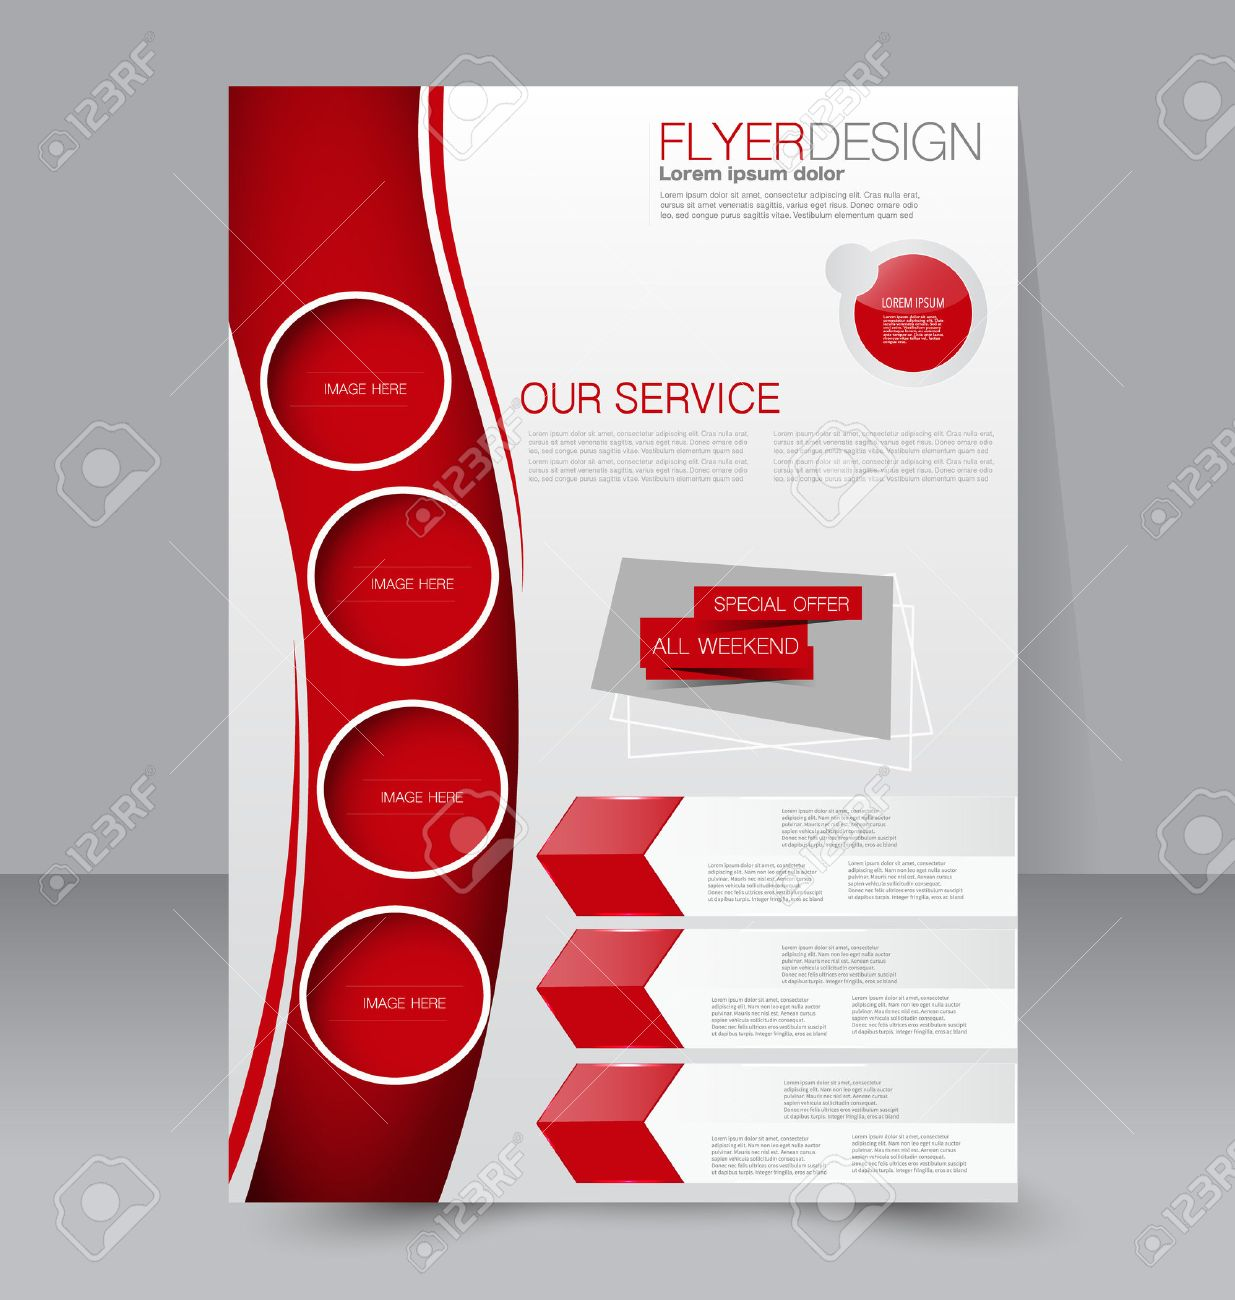 Flyer Template Business Brochure Editable A Poster For Design - Brochure flyer templates